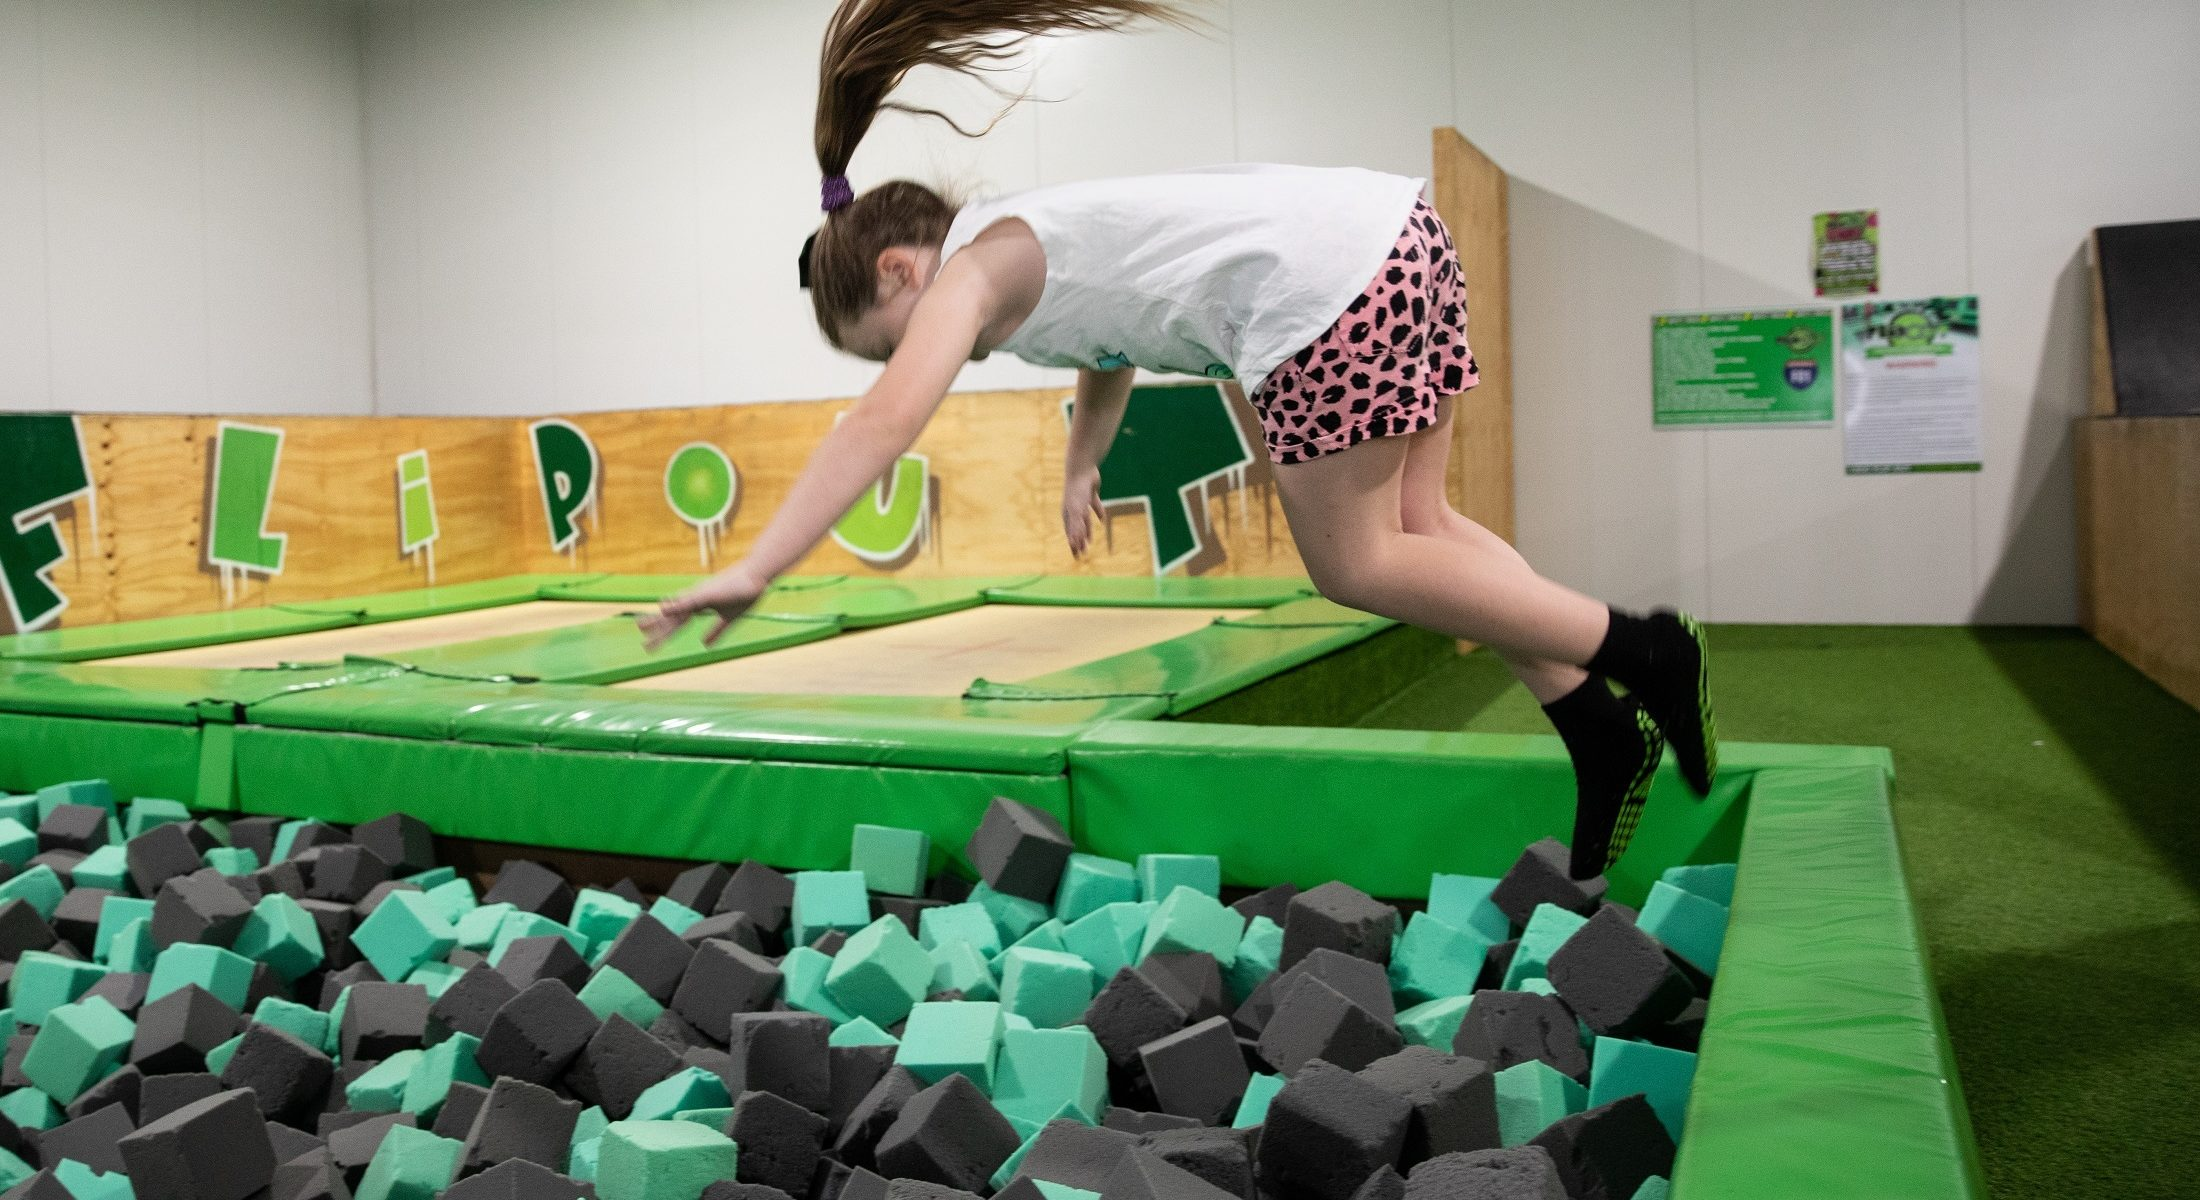 Flip Out Strathpine Foam Trampoline Park Moreton Bay Region